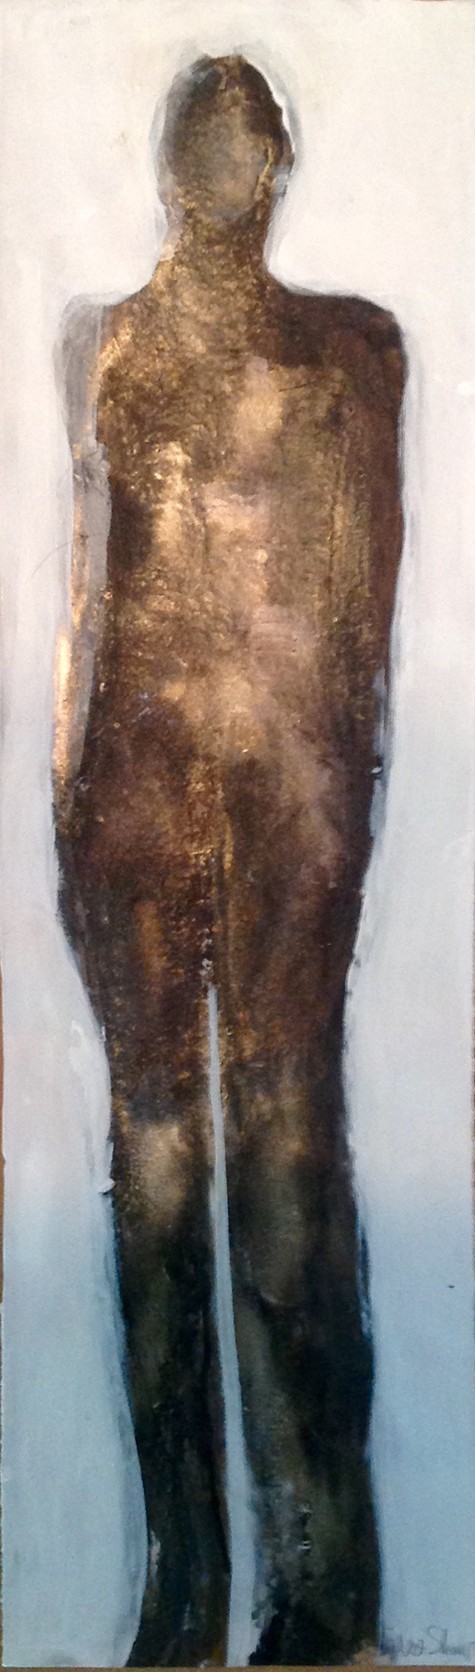 "Bronze - mixed media on paper - 7 3/4"" x 27"""